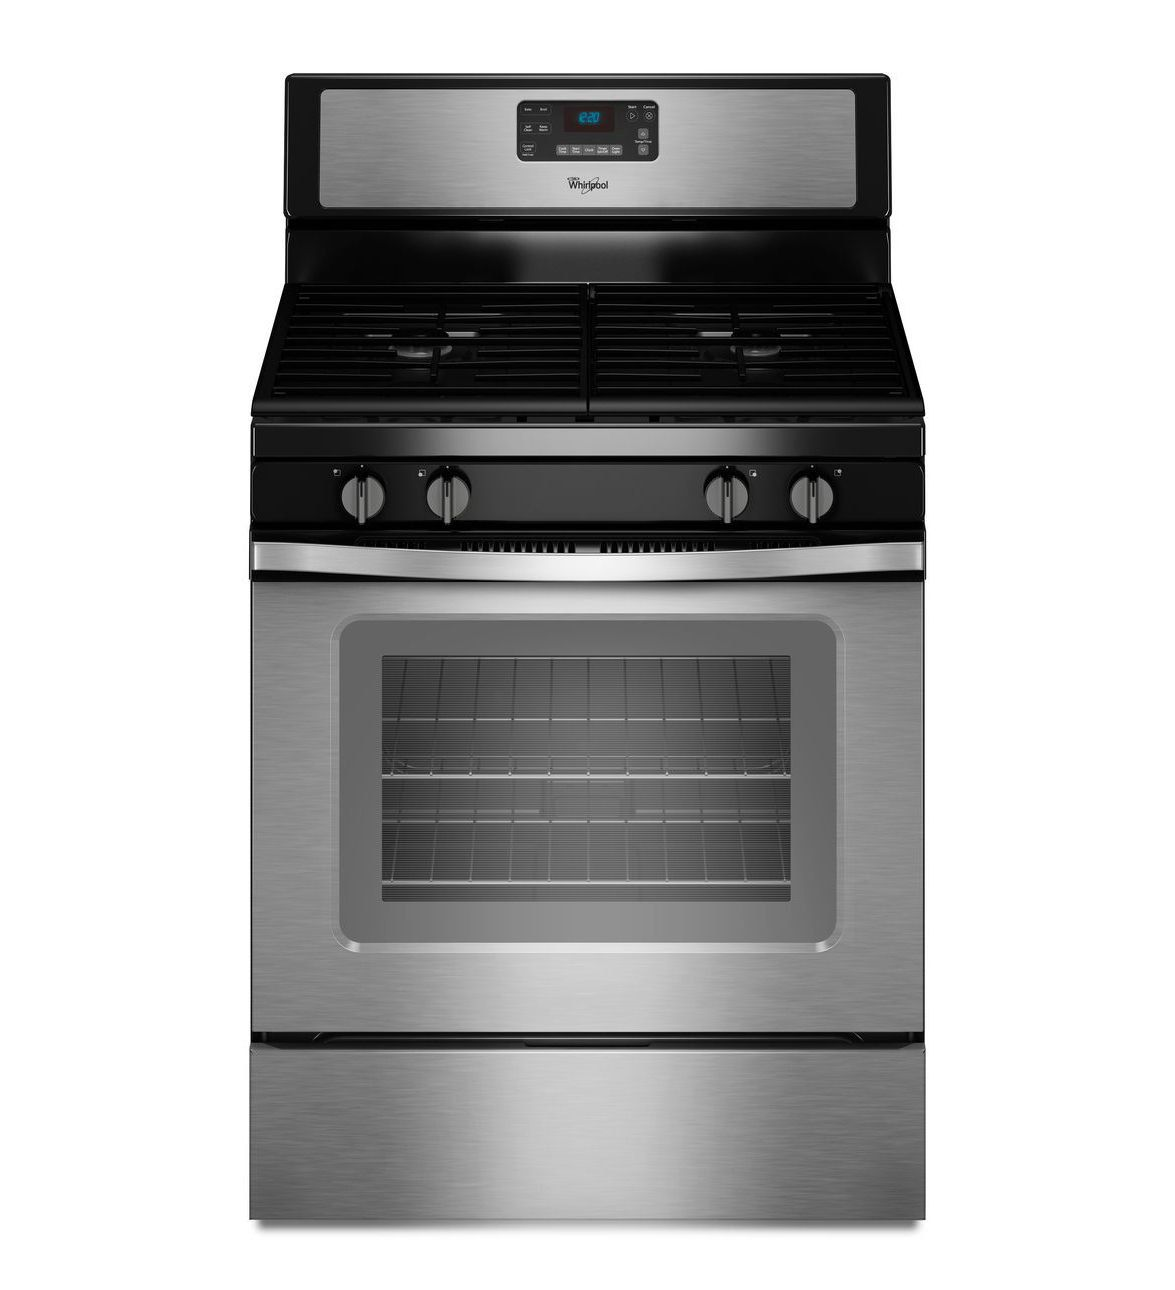 Whirlpool Stainless Steel Gas Range Wfg515s0ess